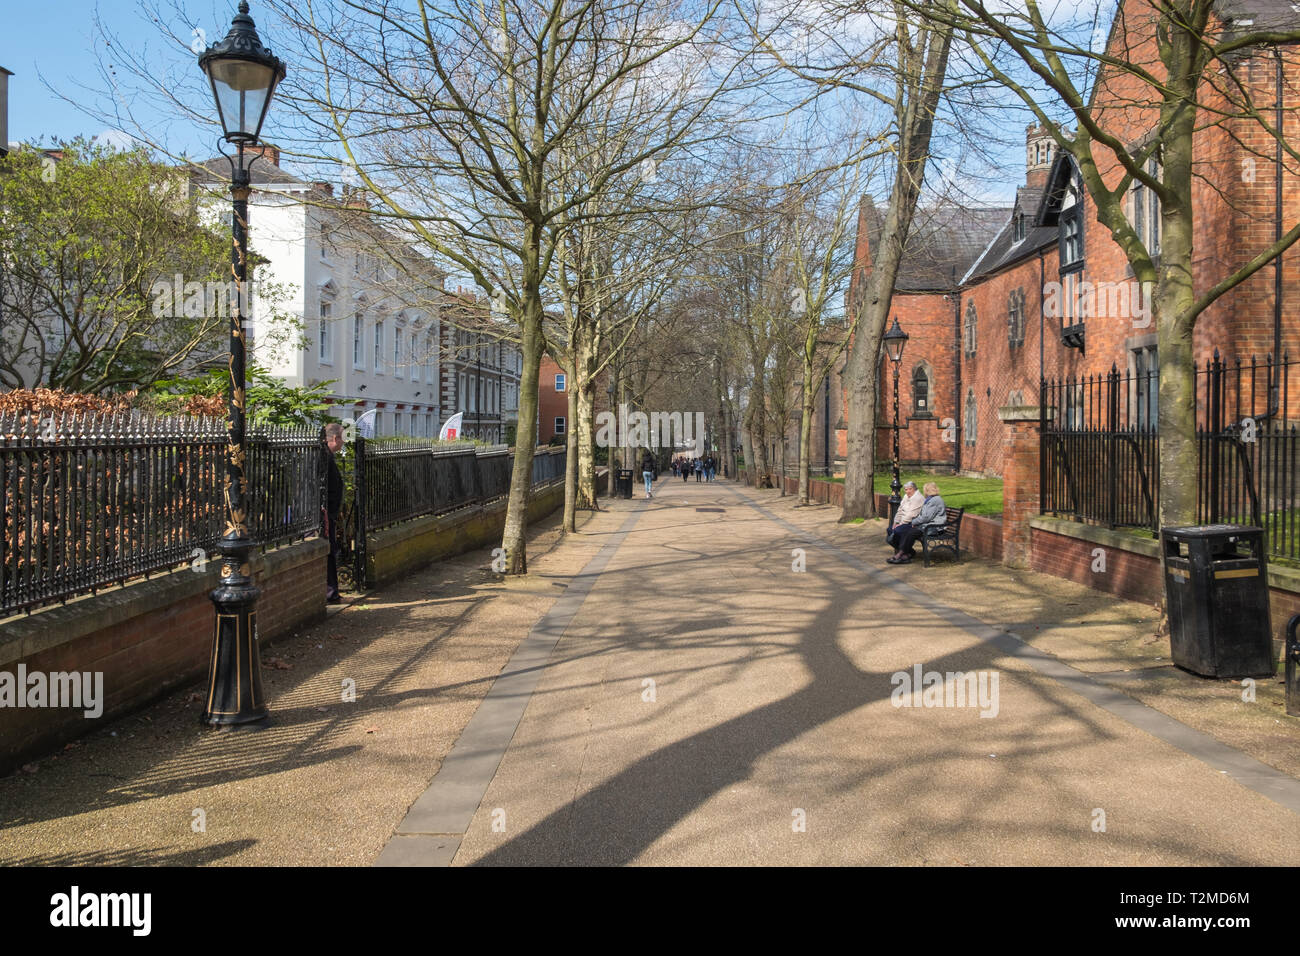 New Walk historic pedestrian street in the centre of Leicester, UK - Stock Image